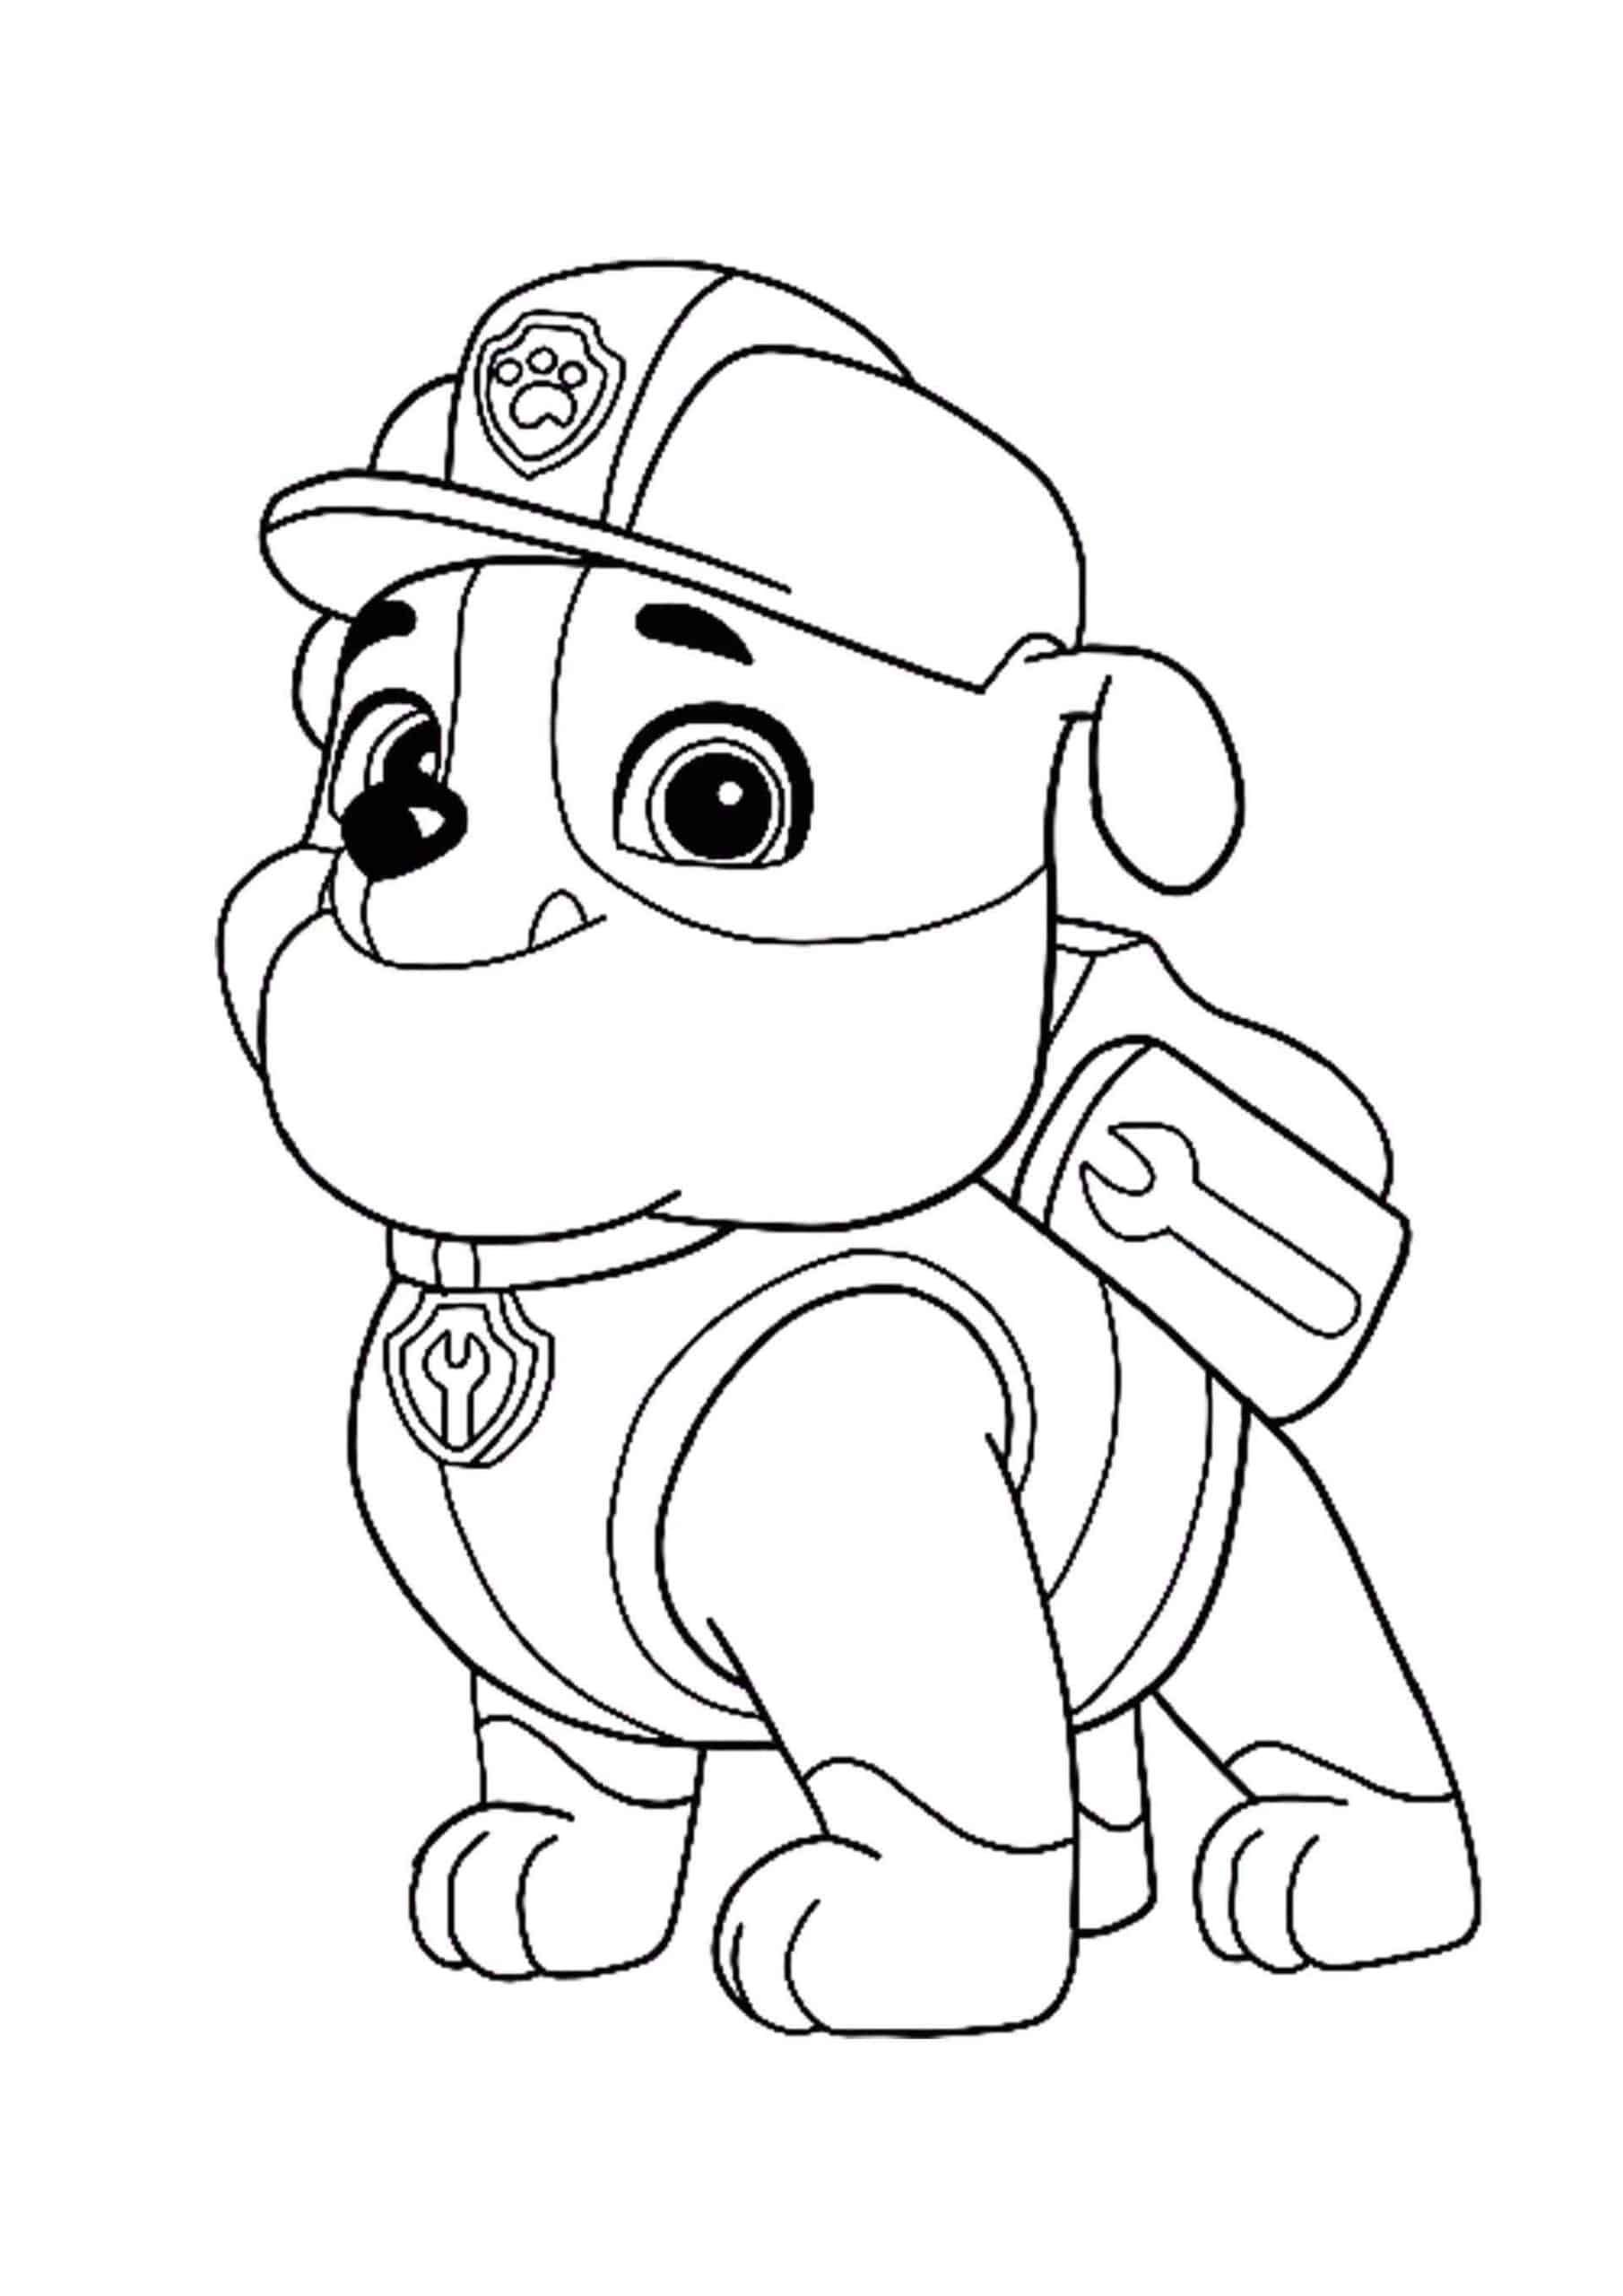 paw patrol characters how to draw marshall paw patrol sketchok step by paw patrol characters